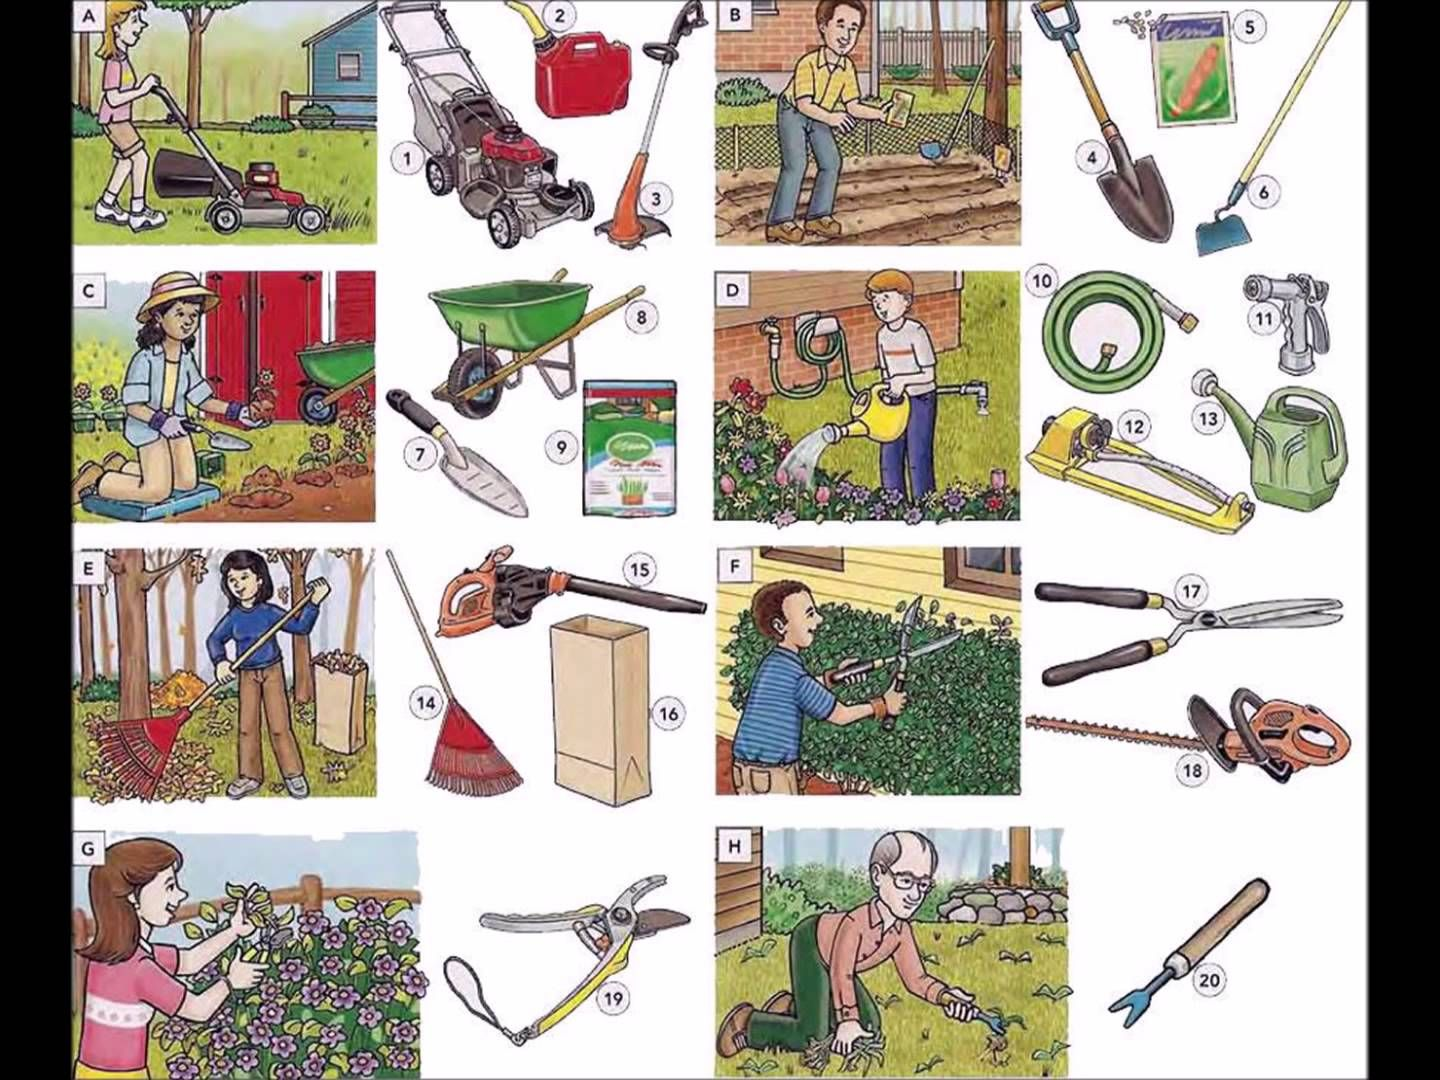 Garden tools garden actions and maintenance video english for Gardening tools vocabulary